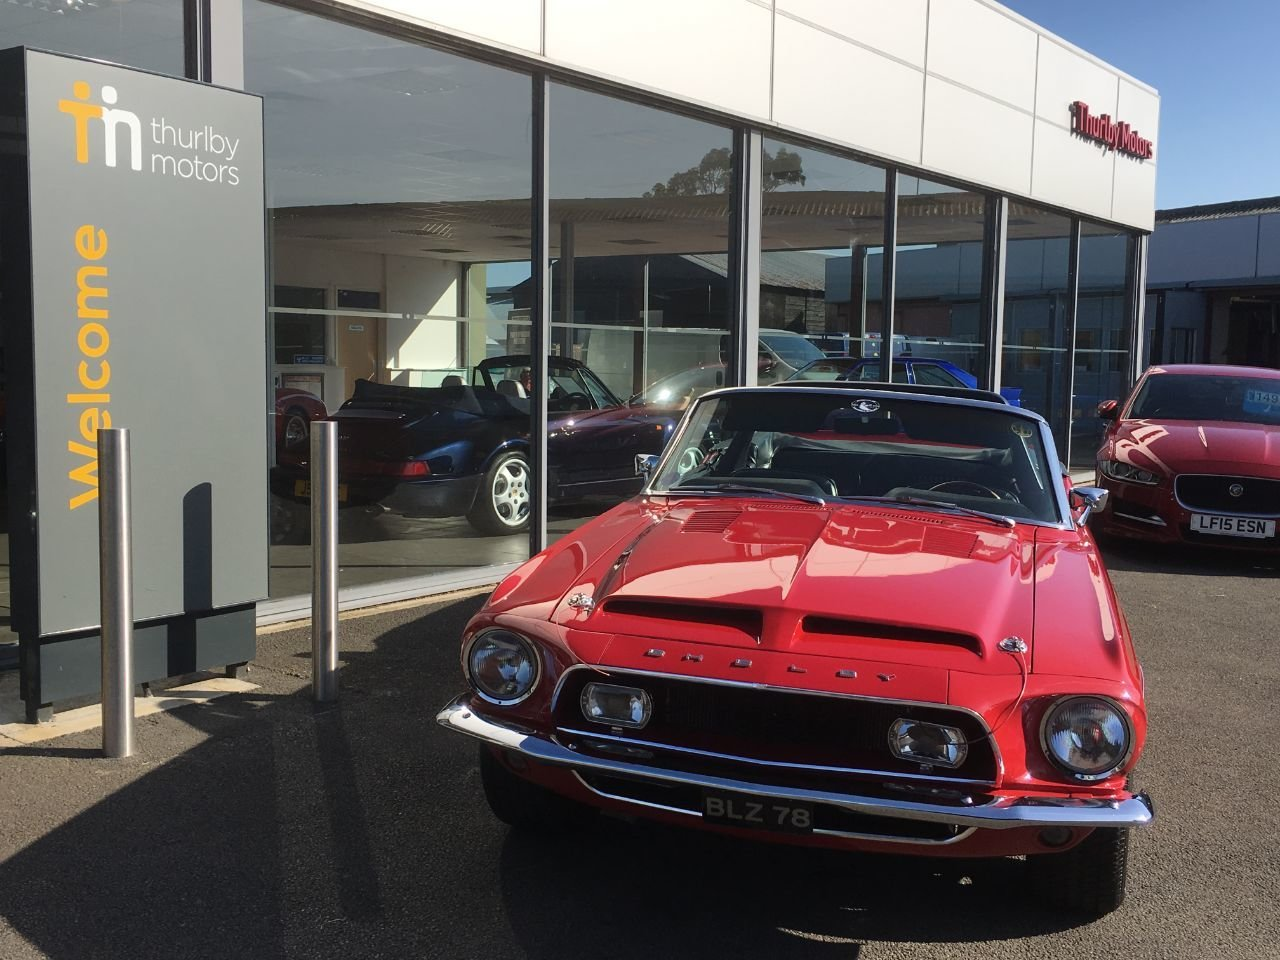 1968 MUSTANG GT350 For Sale (picture 1 of 6)